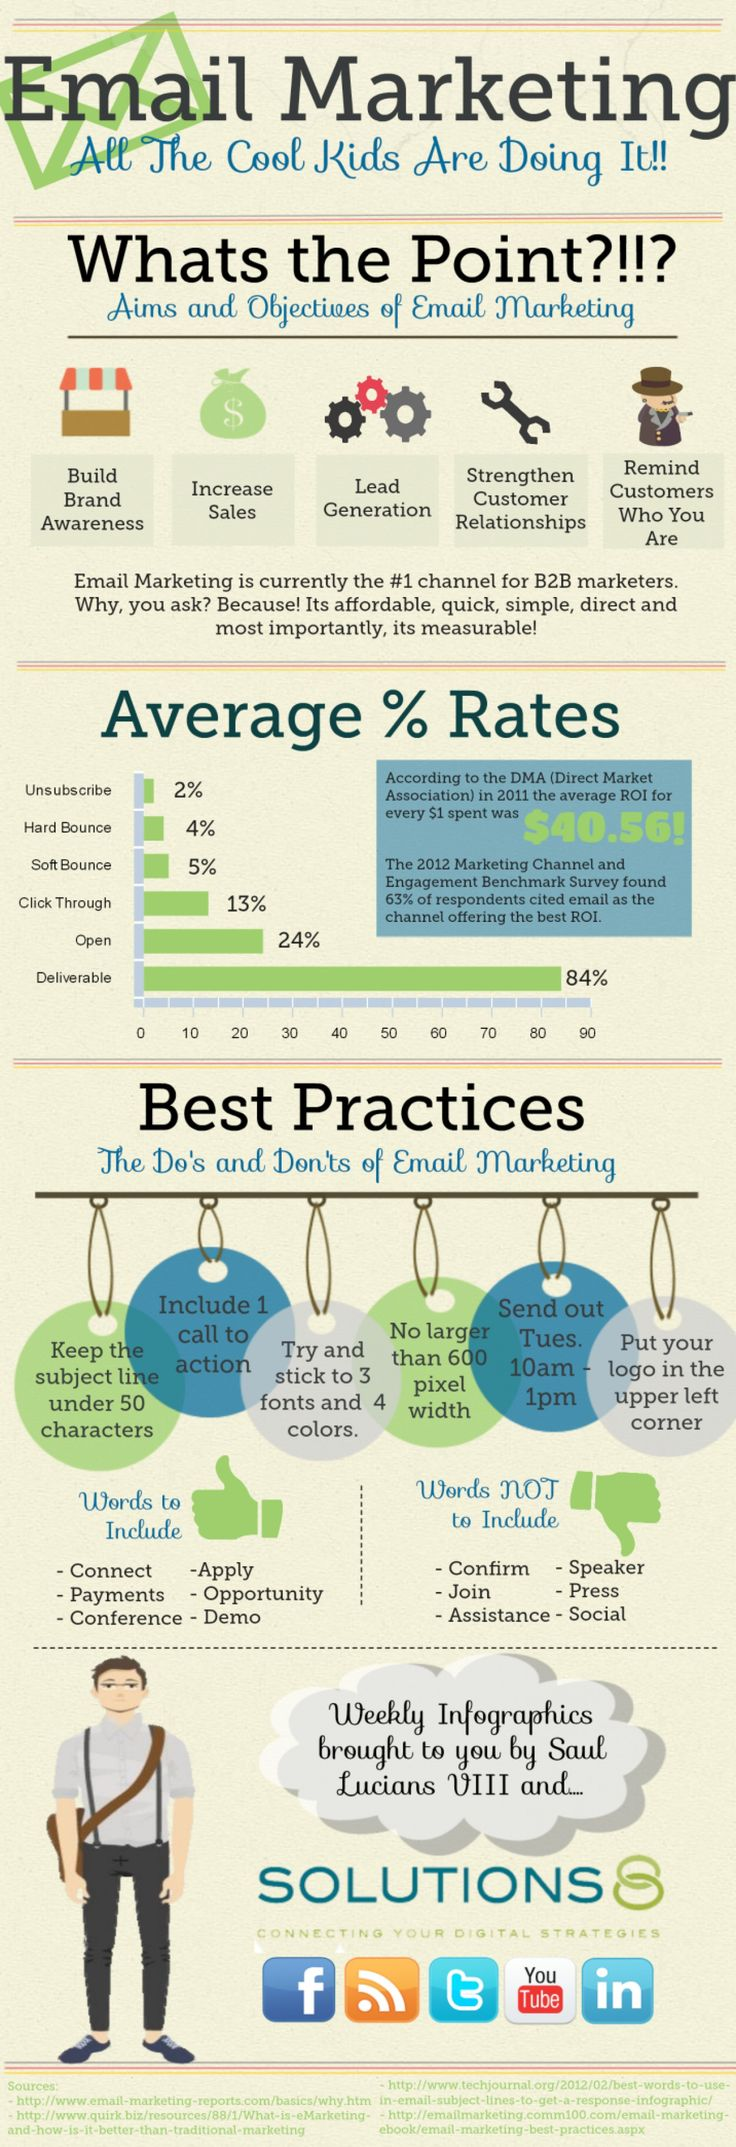 #EmailMarketing: all the cool kids are doing it